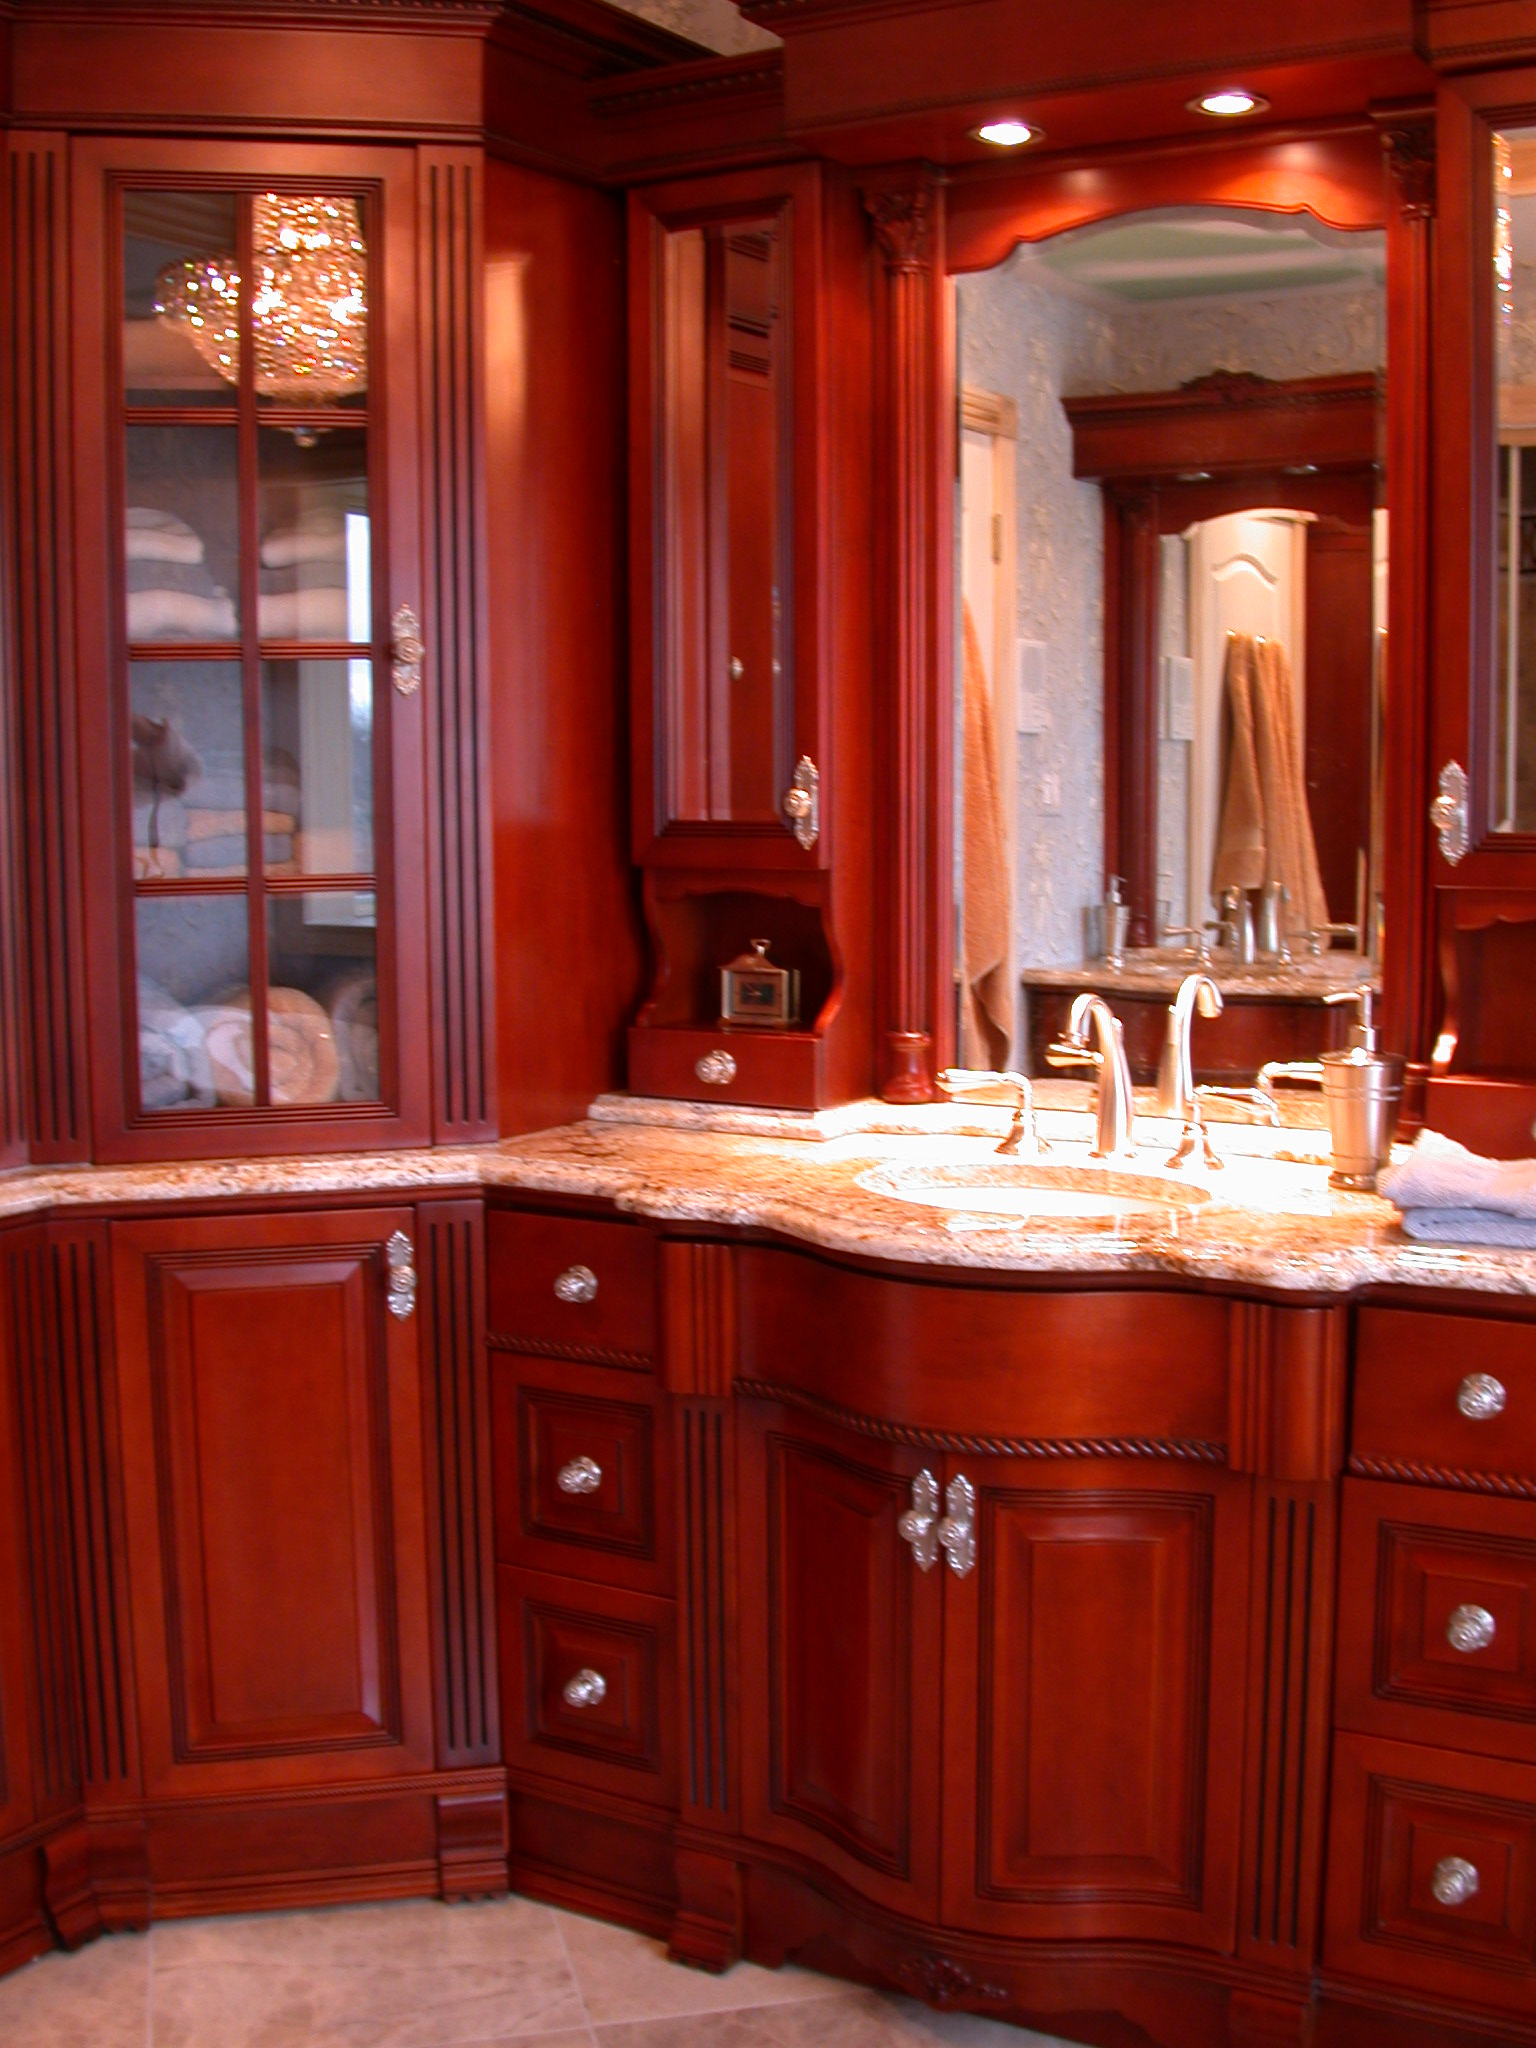 Welcome To South Amboy Plumbing Supply Wholesale Plumbing Products South Amboy Plumbing Supply